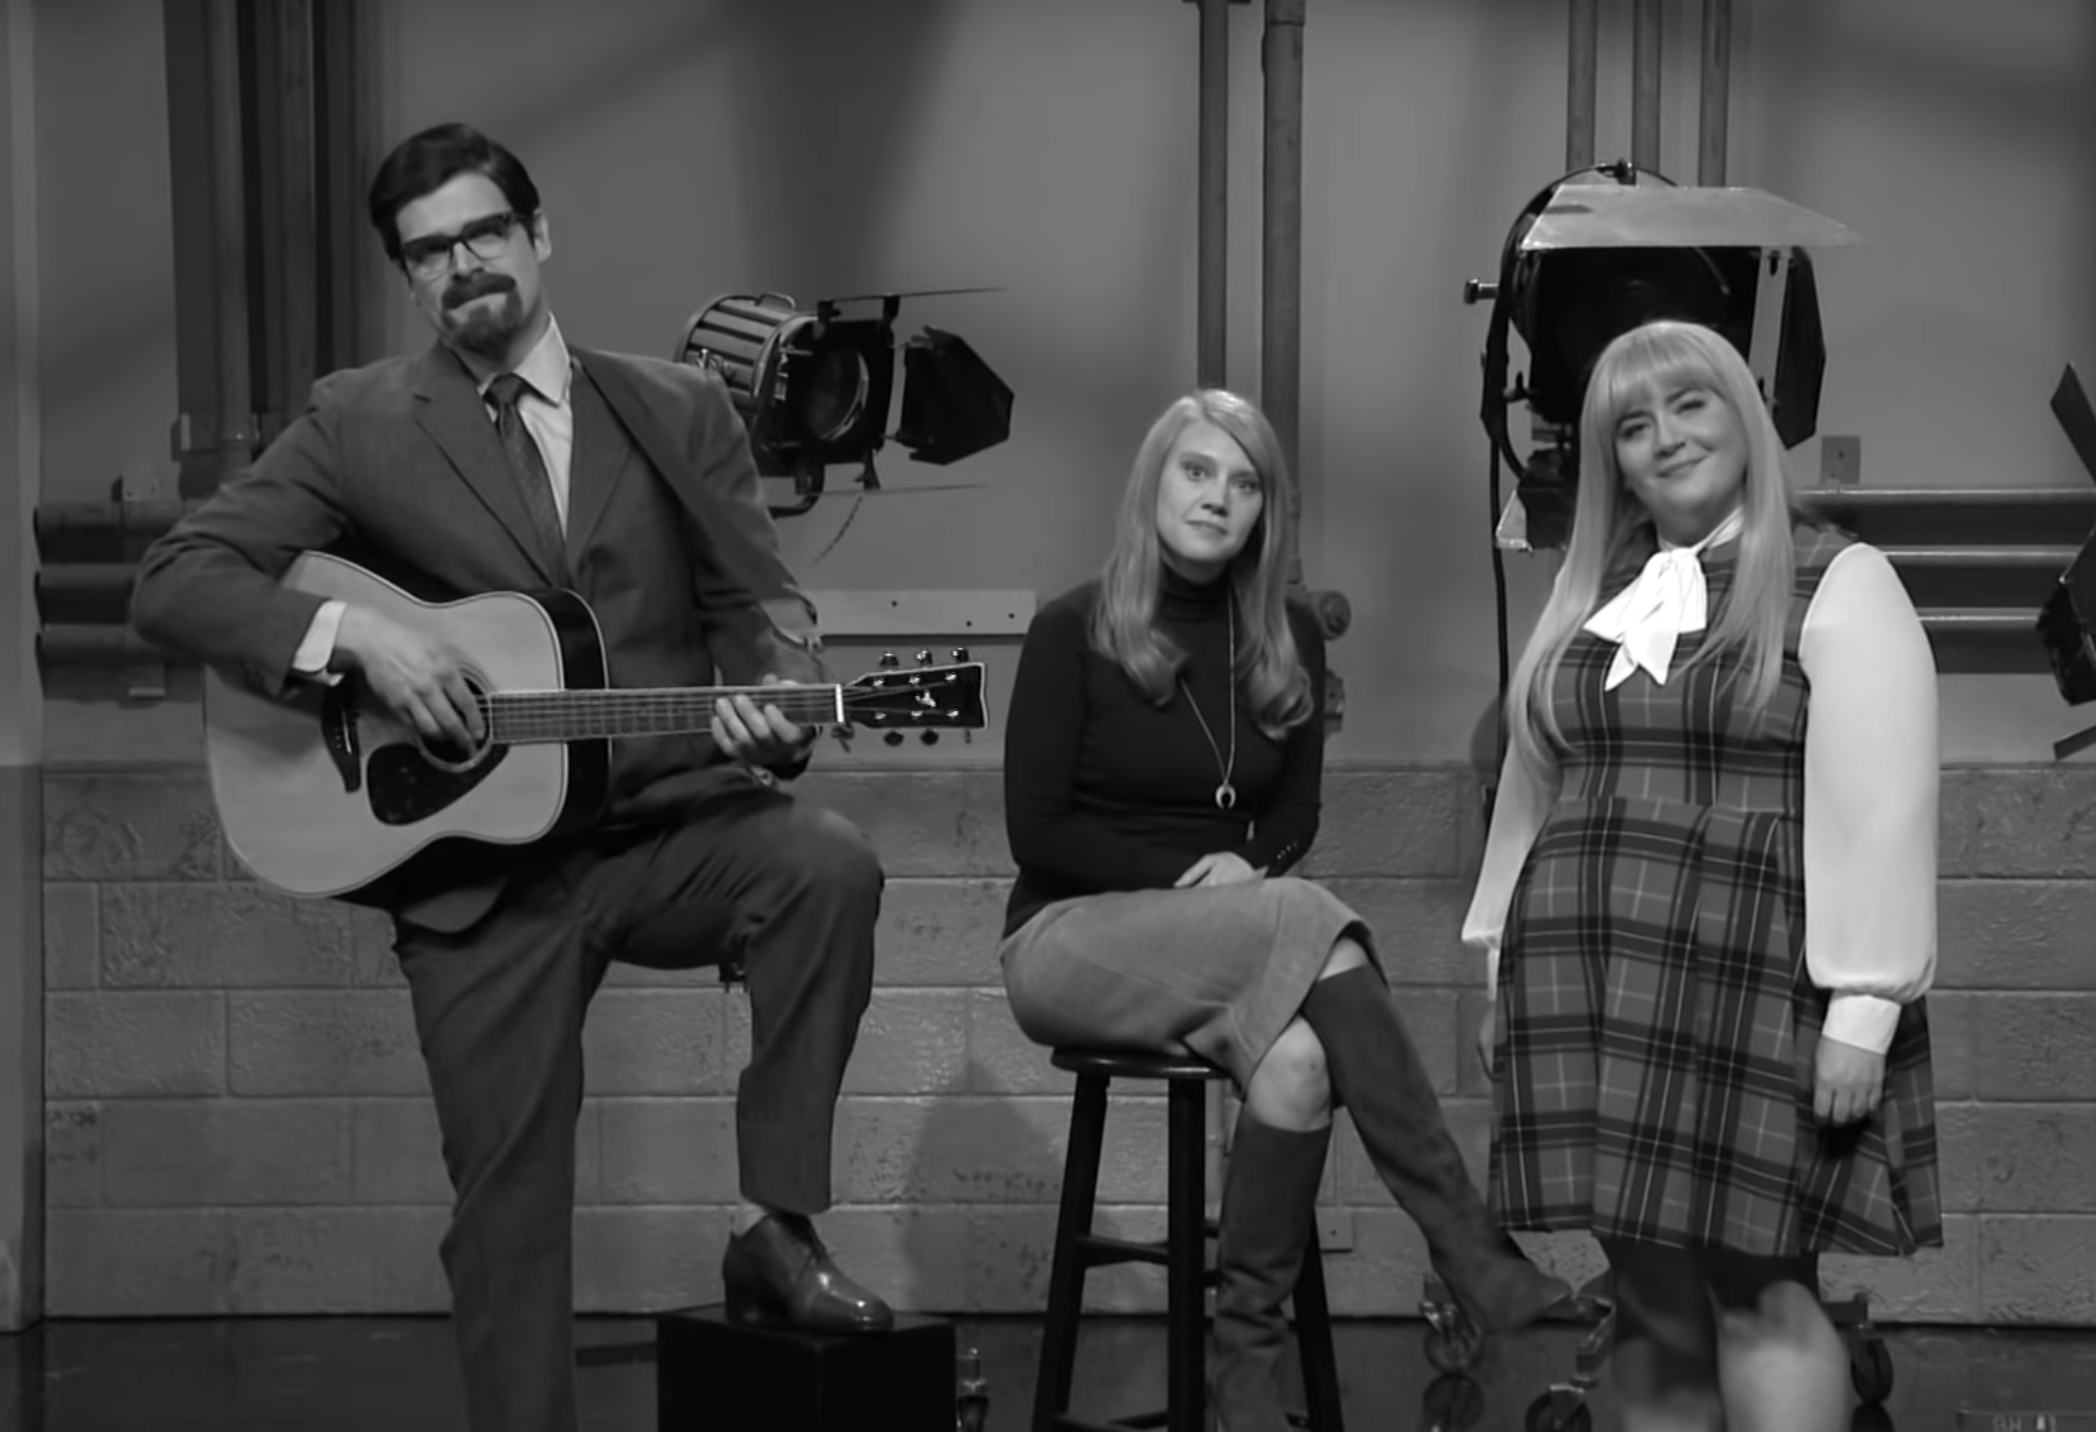 SNL Gifts Us All With a Song About Time That's Eternal